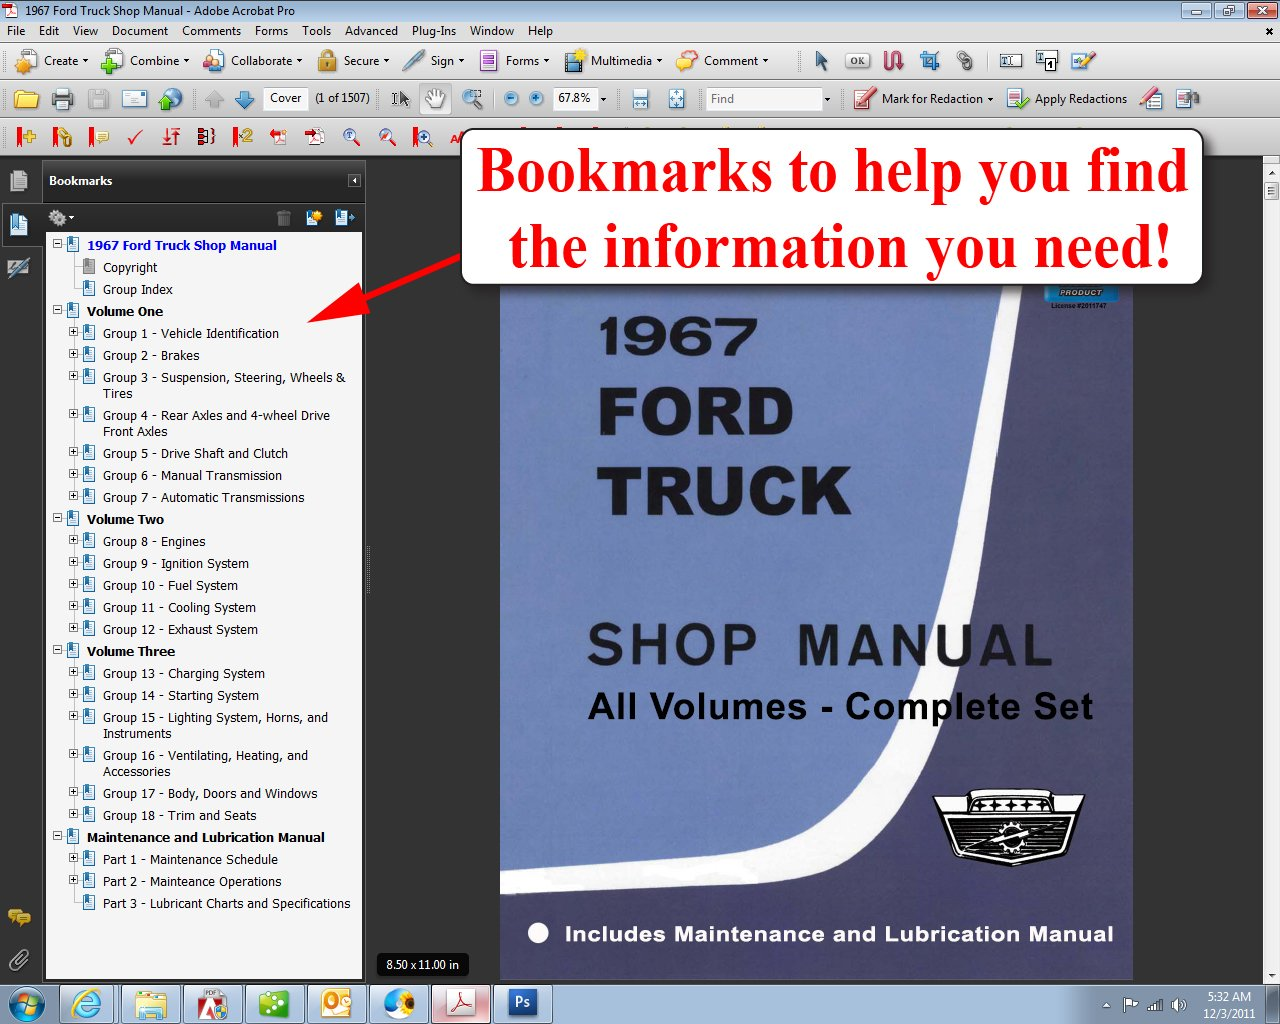 1967 Ford Truck Shop Manual: Ford Motor Company, David E. LeBlanc:  9781603710756: Amazon.com: Books